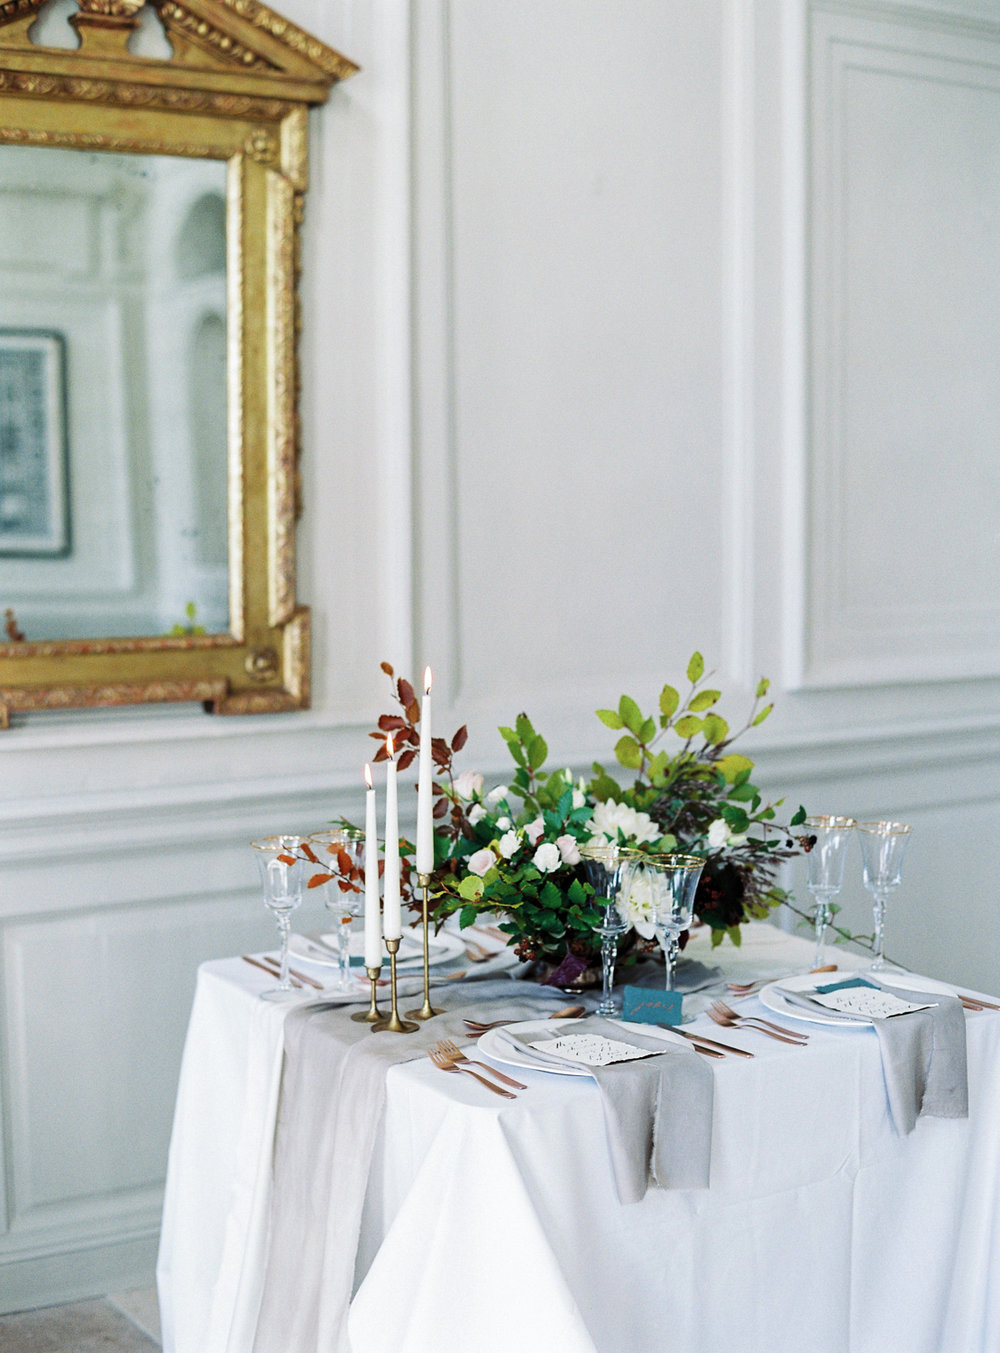 tablescape | Gloster House, Brosna, Ireland